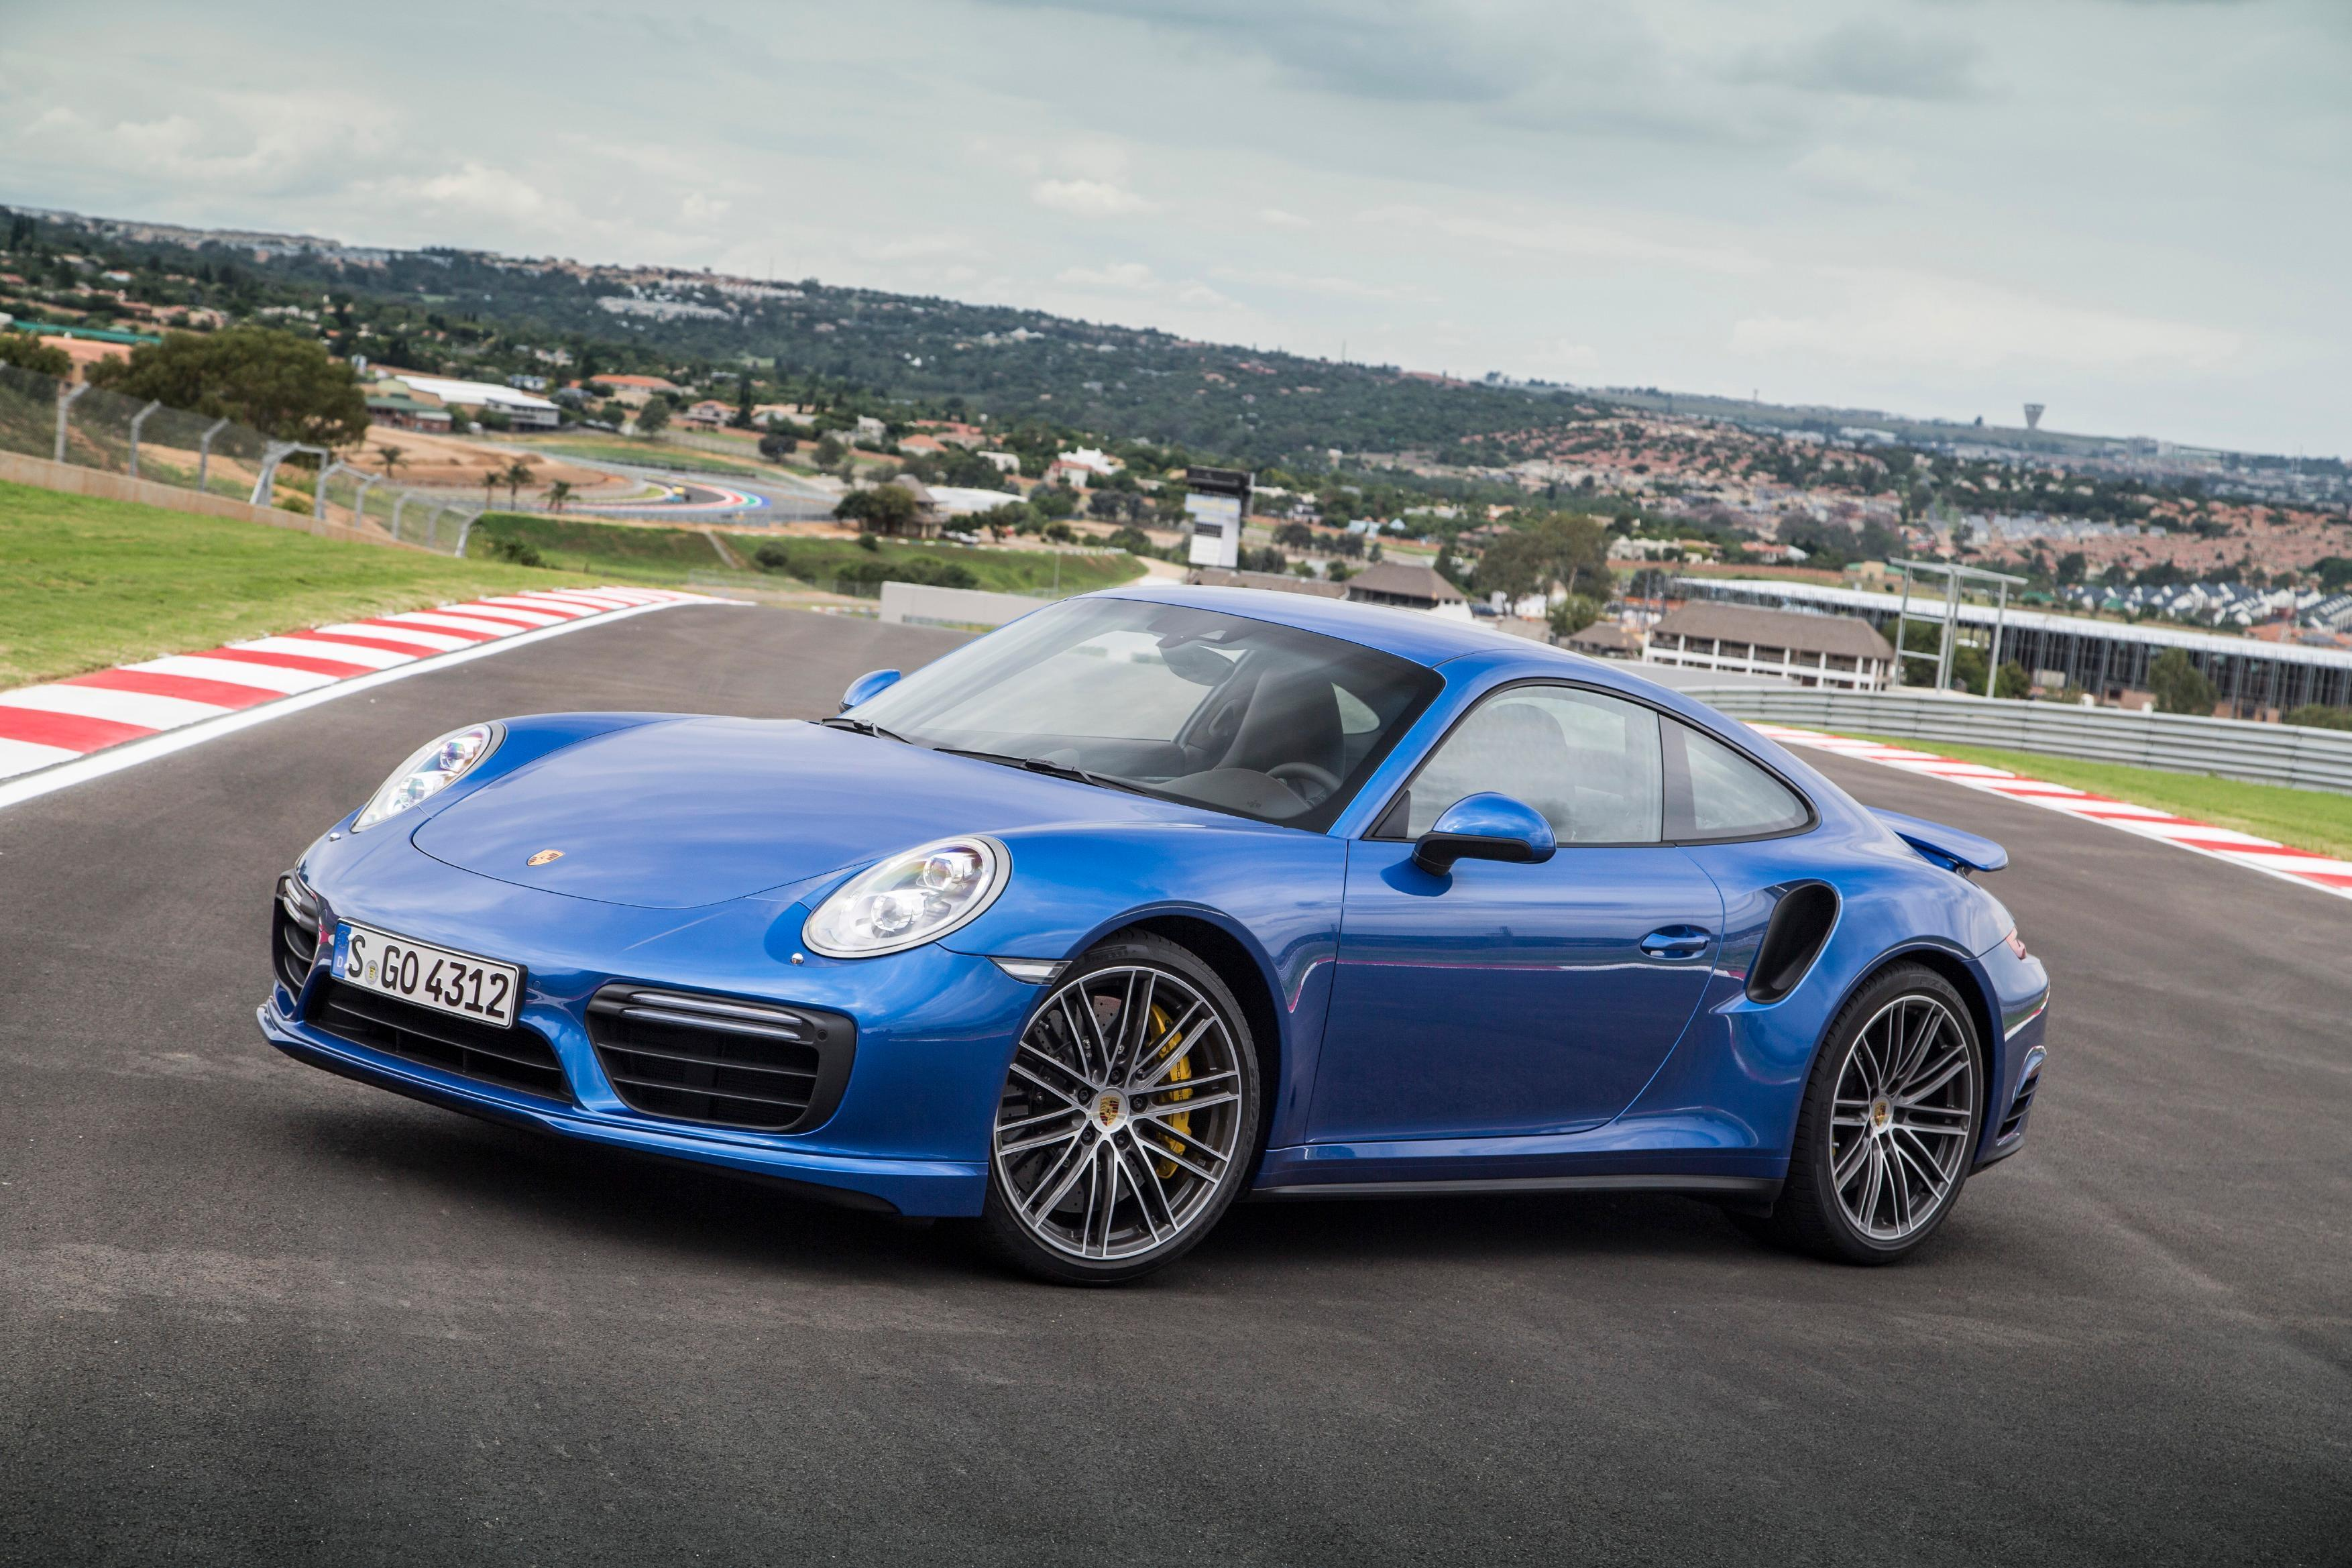 Testing The New Porsche 911 Turbo In South Africa: Beautiful, Brutal [Video]